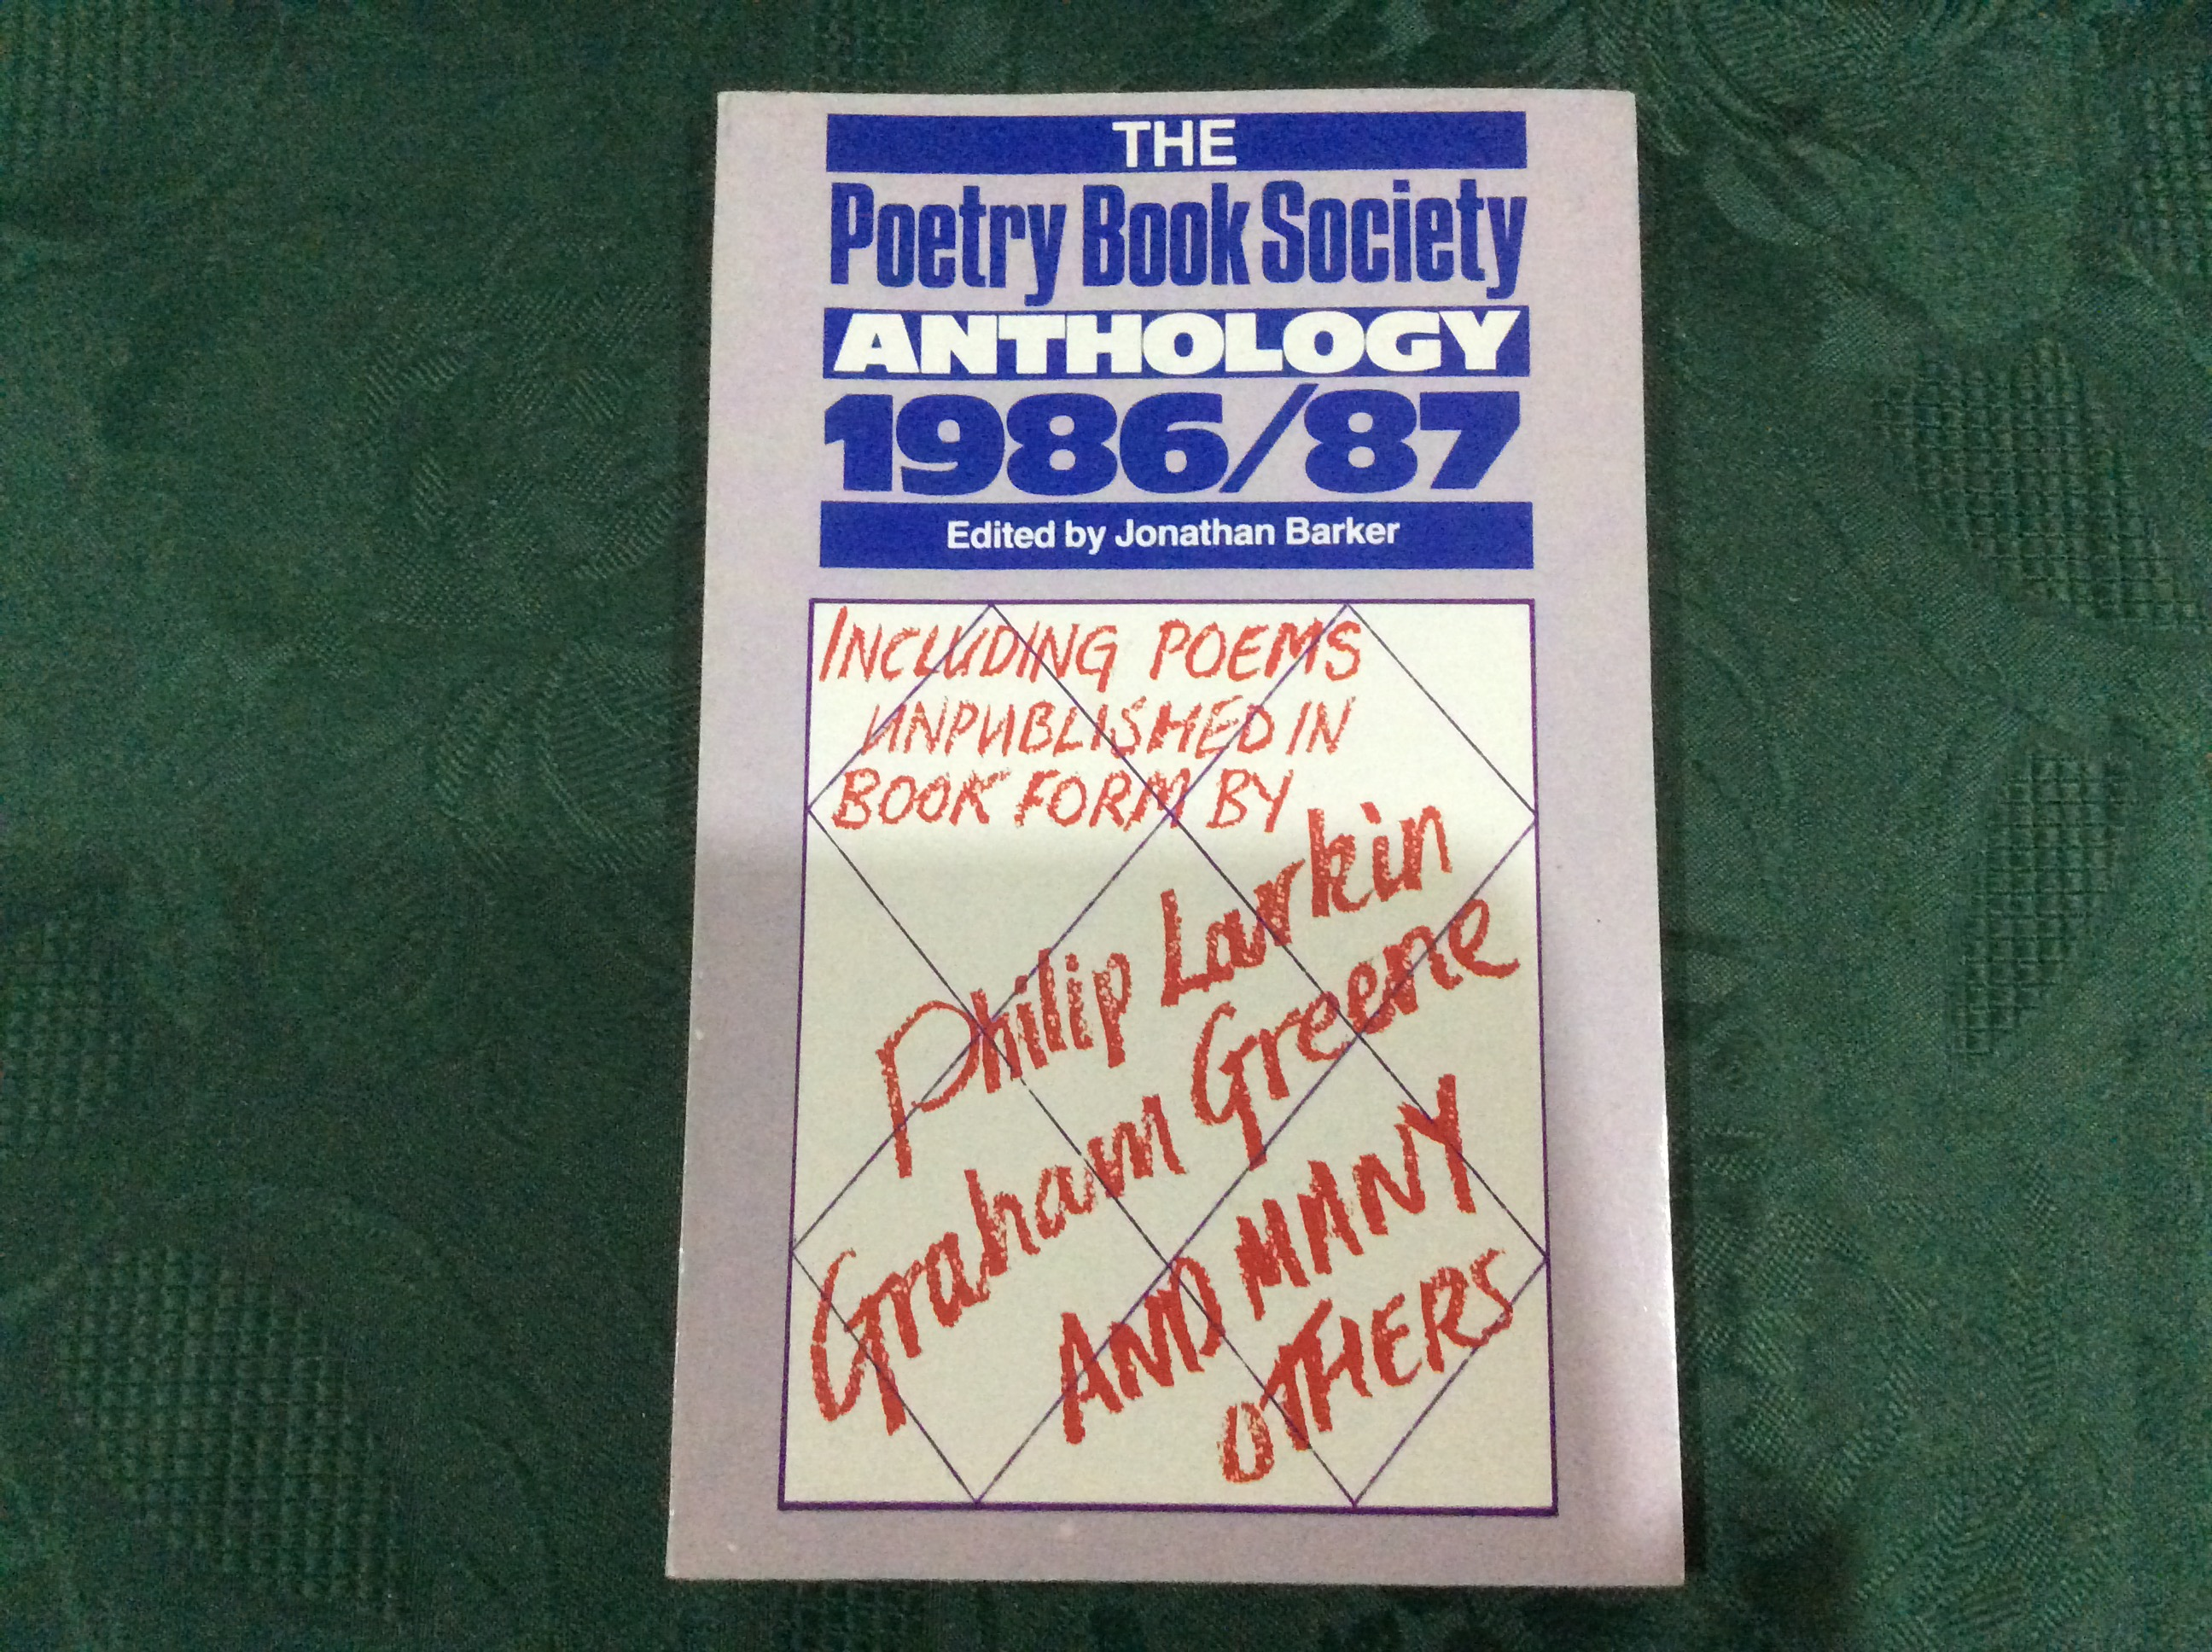 Image for The Poetry Book Society Anthology 1986/87